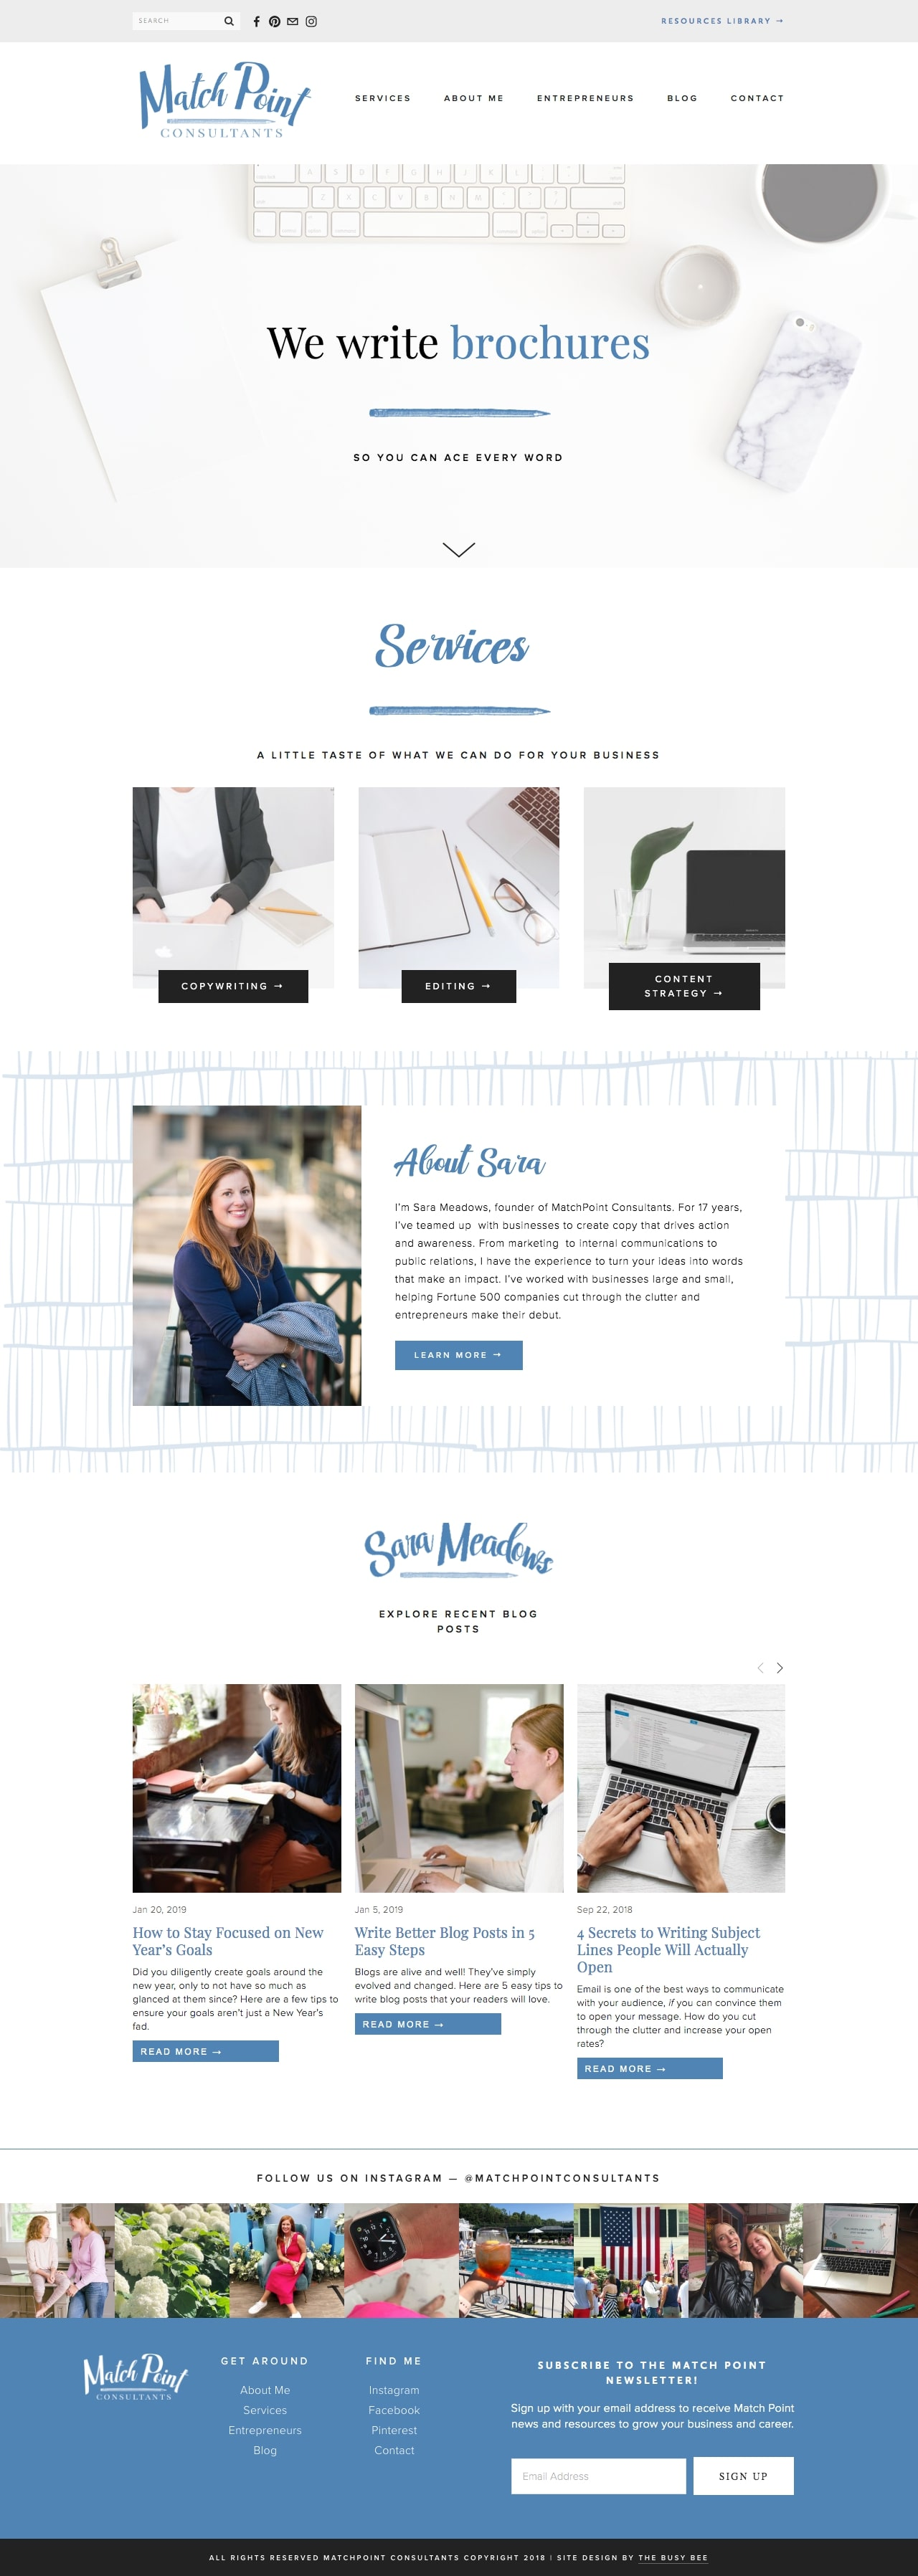 Match-Point-Consultants-Best-Examples-of-Squarespace-websites-for-marketing-and-copywriting-businesses.jpg